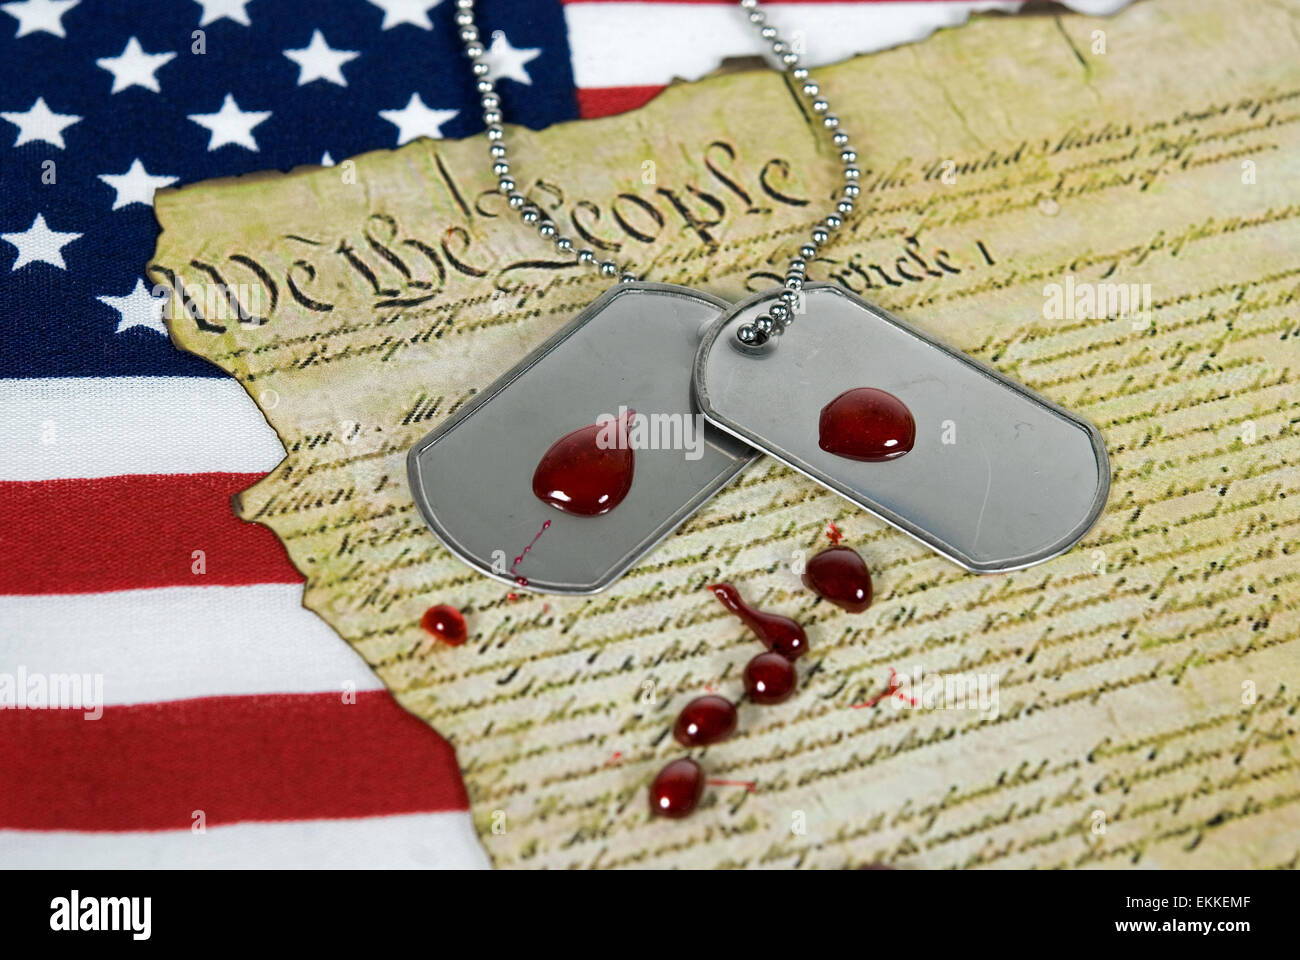 Blood drops on military dog tags on the United States Constitution document with flag. - Stock Image